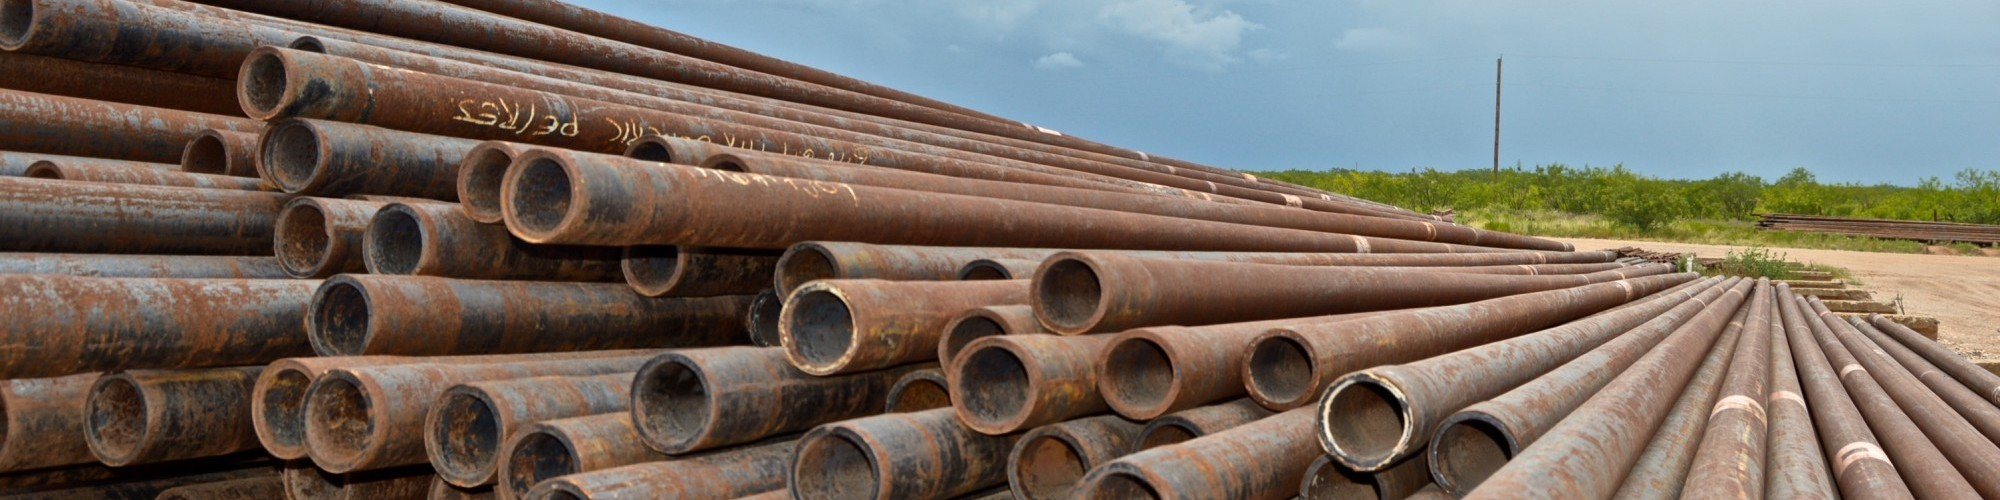 sell pipe 2 providence pipe supply purchasing